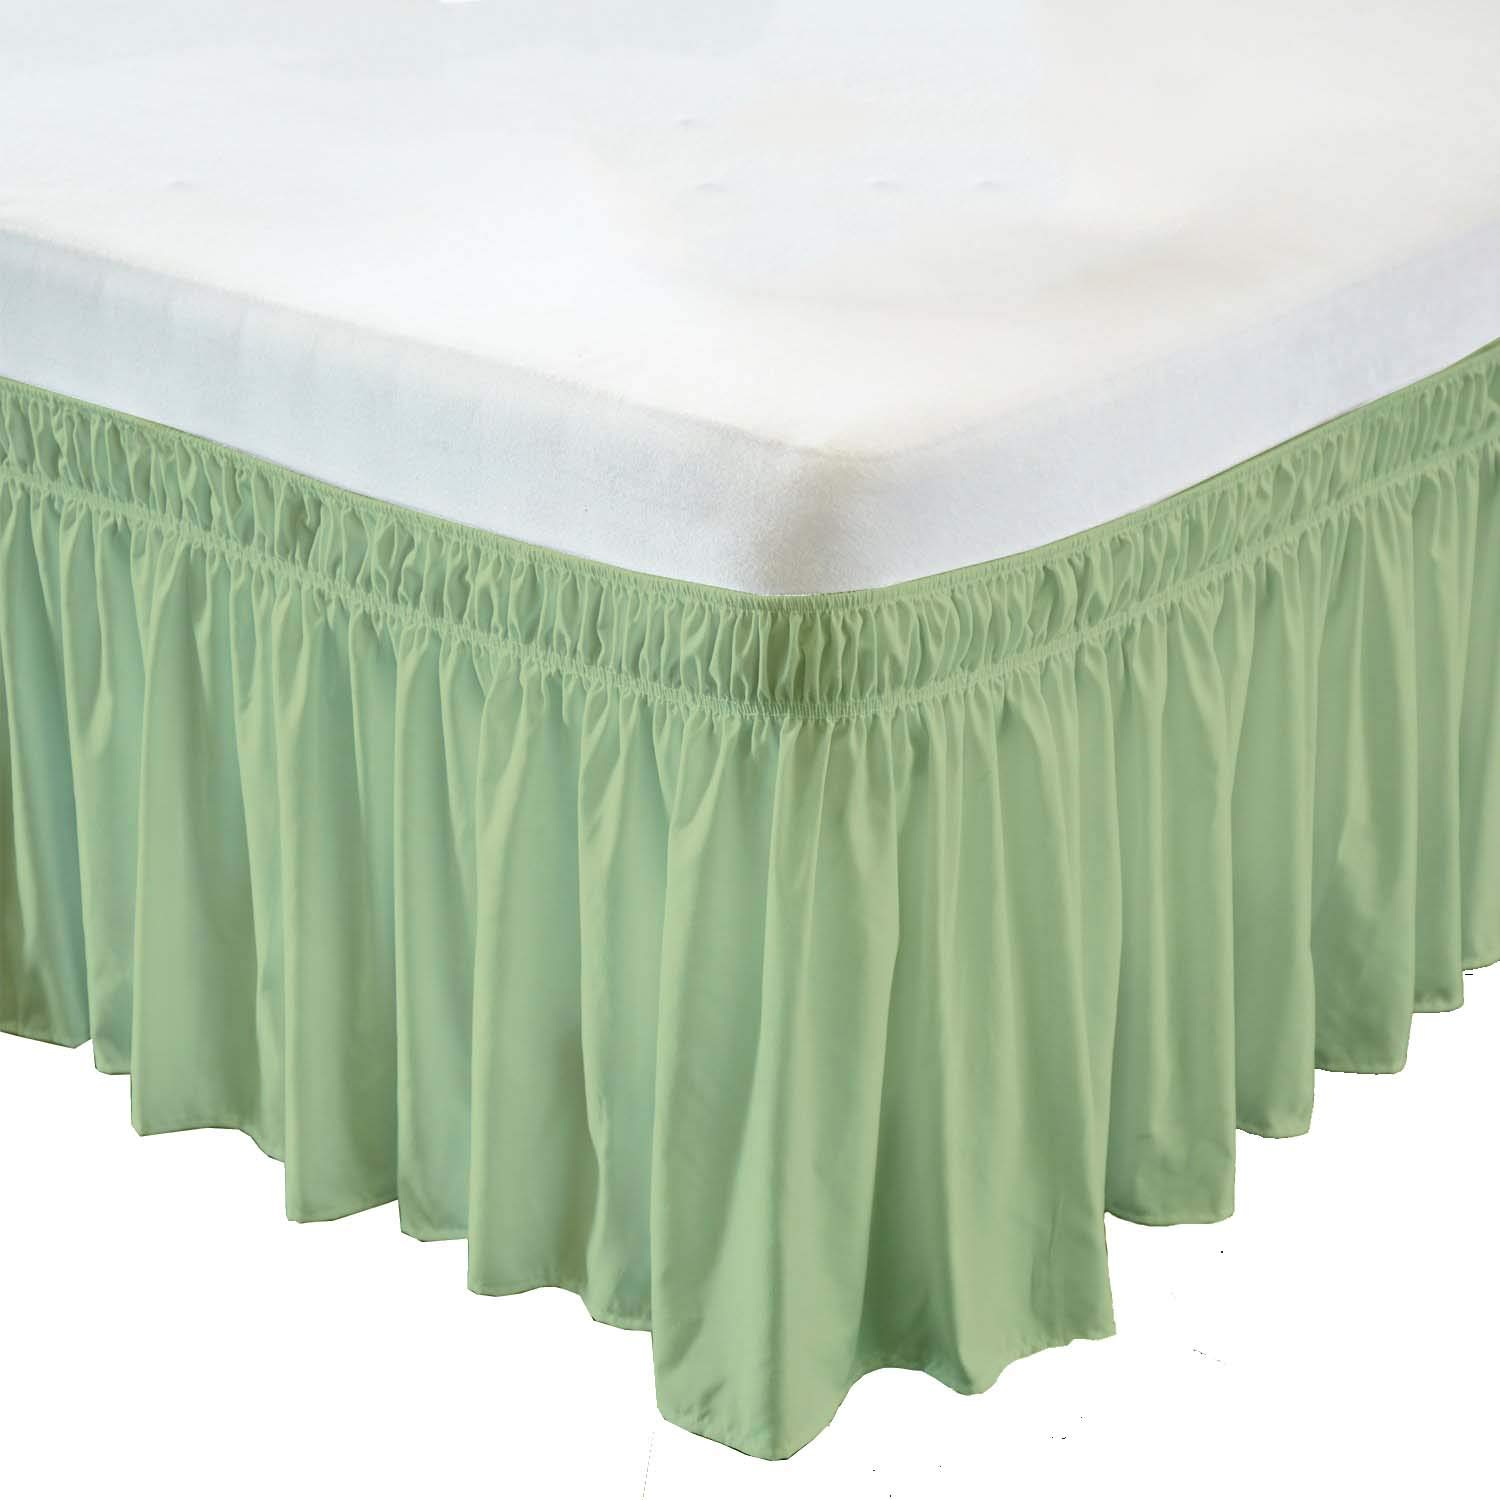 Wrap Around Bed Skirt- 12 Inch Drop Length Style Easy Fit Elastic Bed Ruffles Bed-Skirt Wrinkle Free Bed Skirt - Sage, Twin in All Bed Sizes and Colors